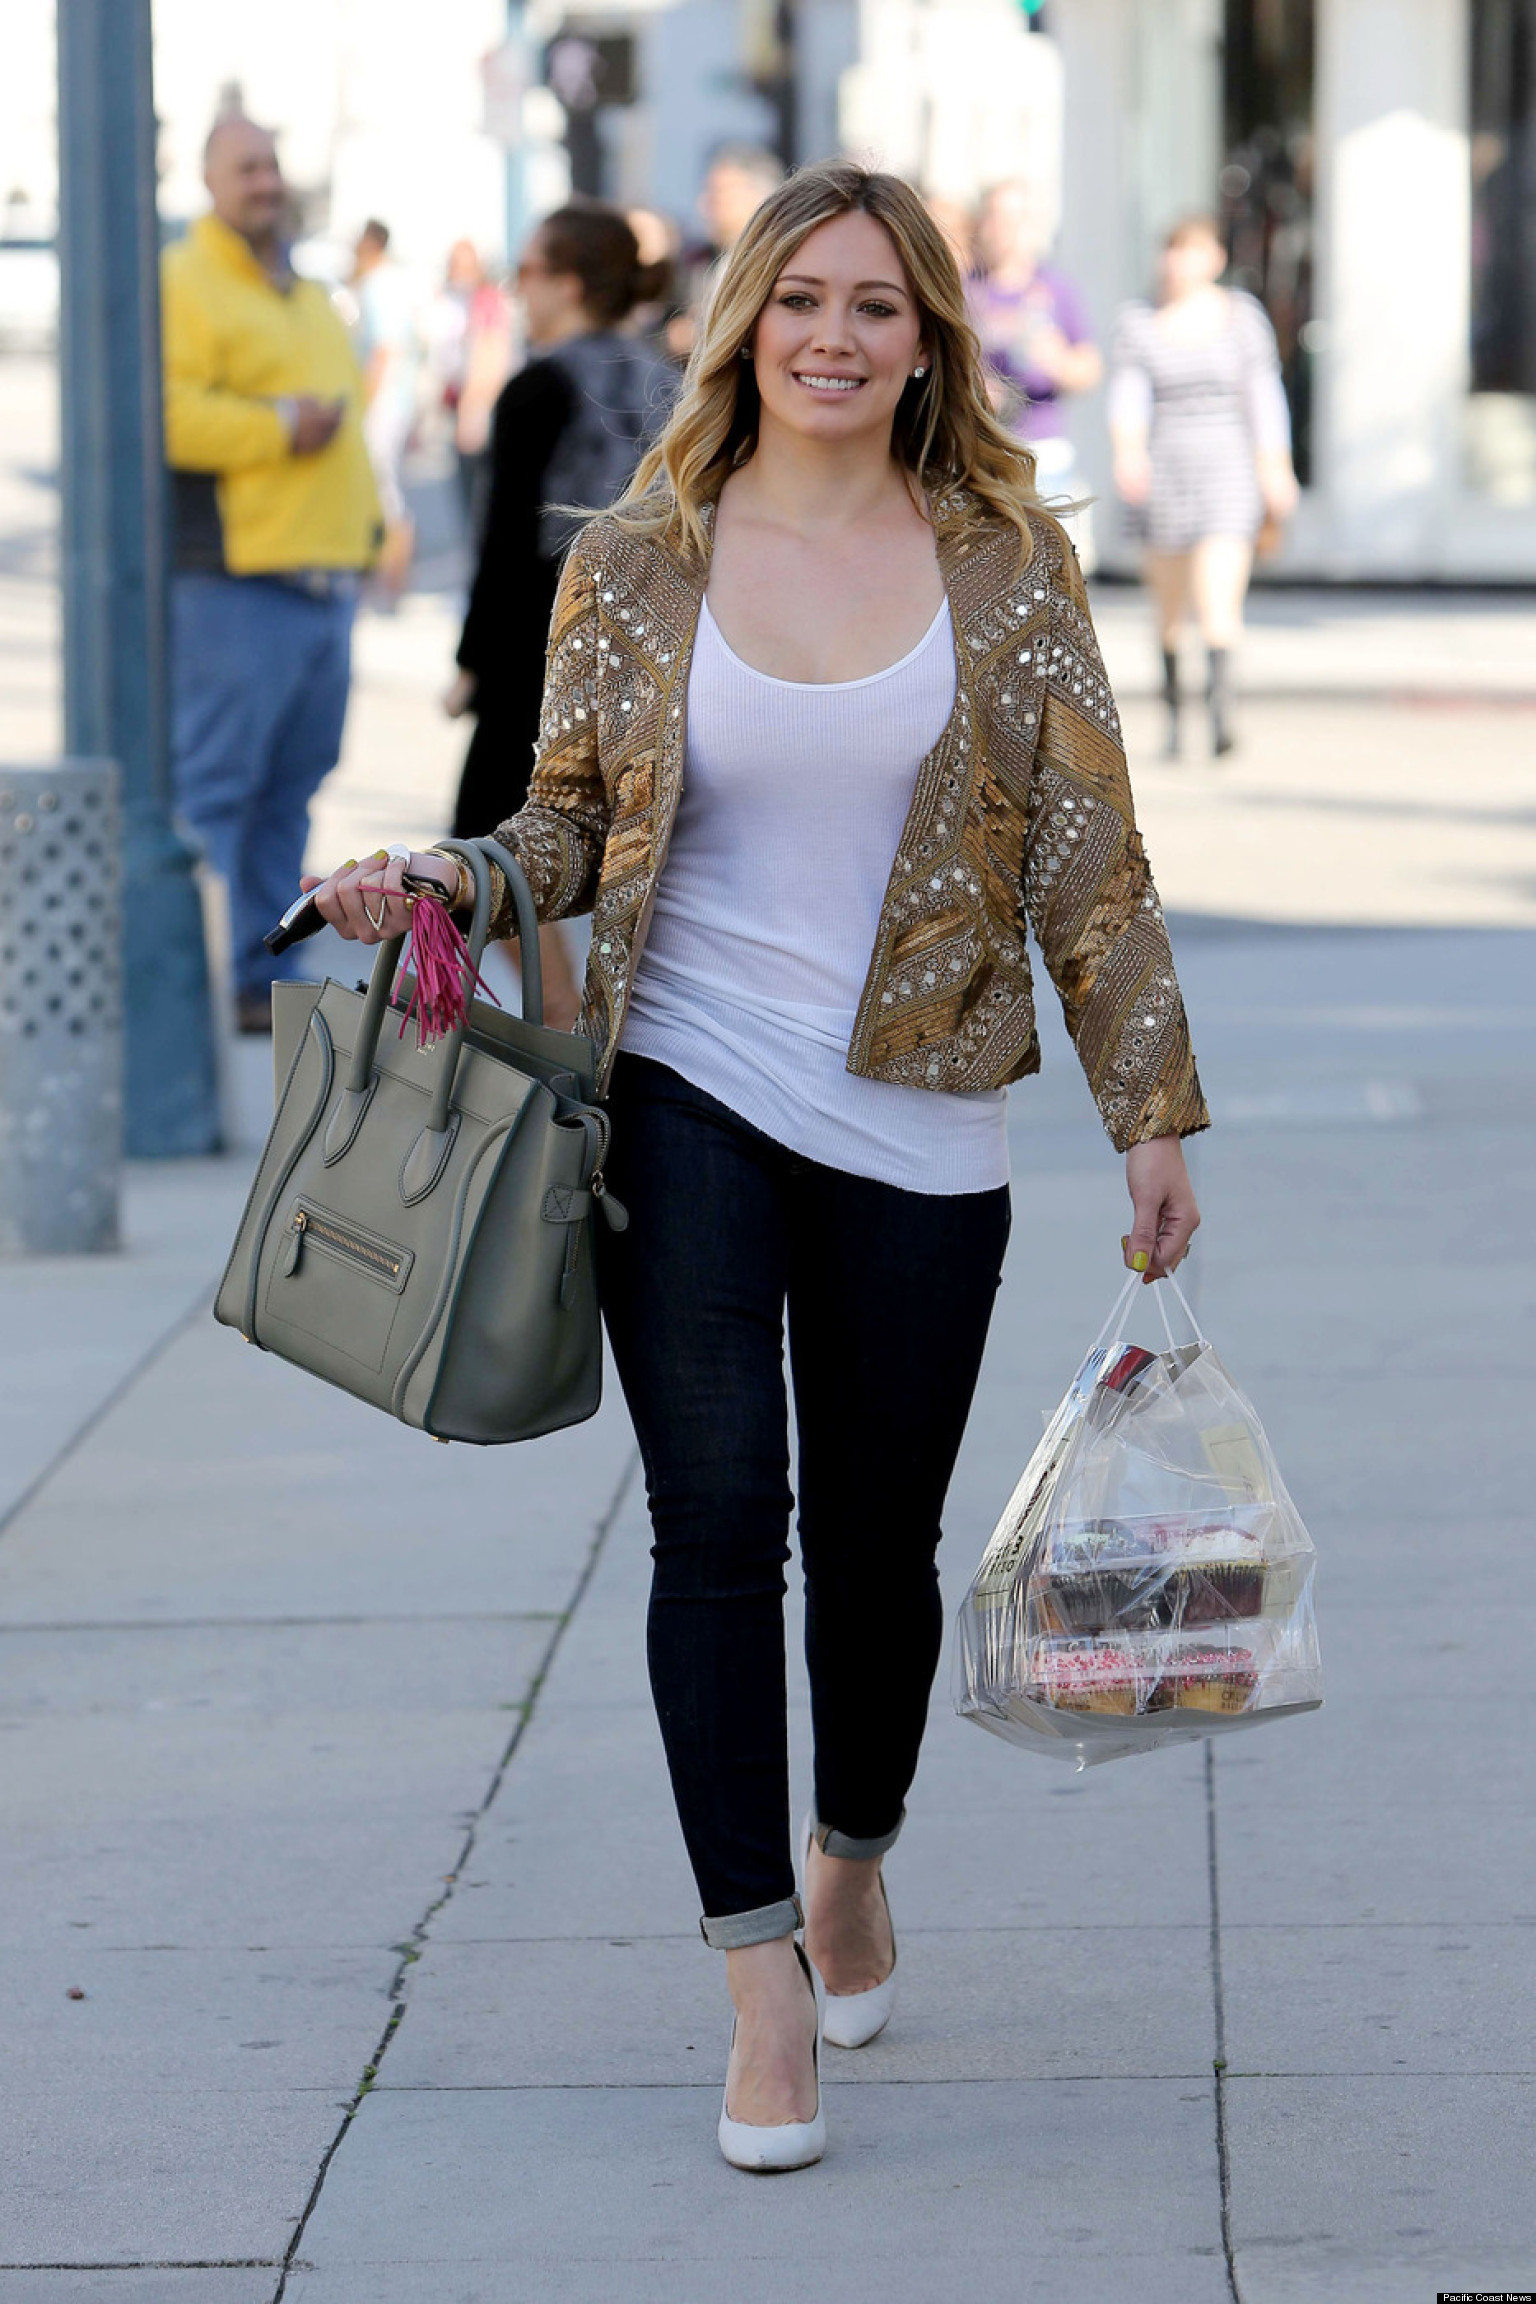 Hilary Duff Weight Loss: Singer Lost 30 Pounds Since ... Hilary Duff Weight